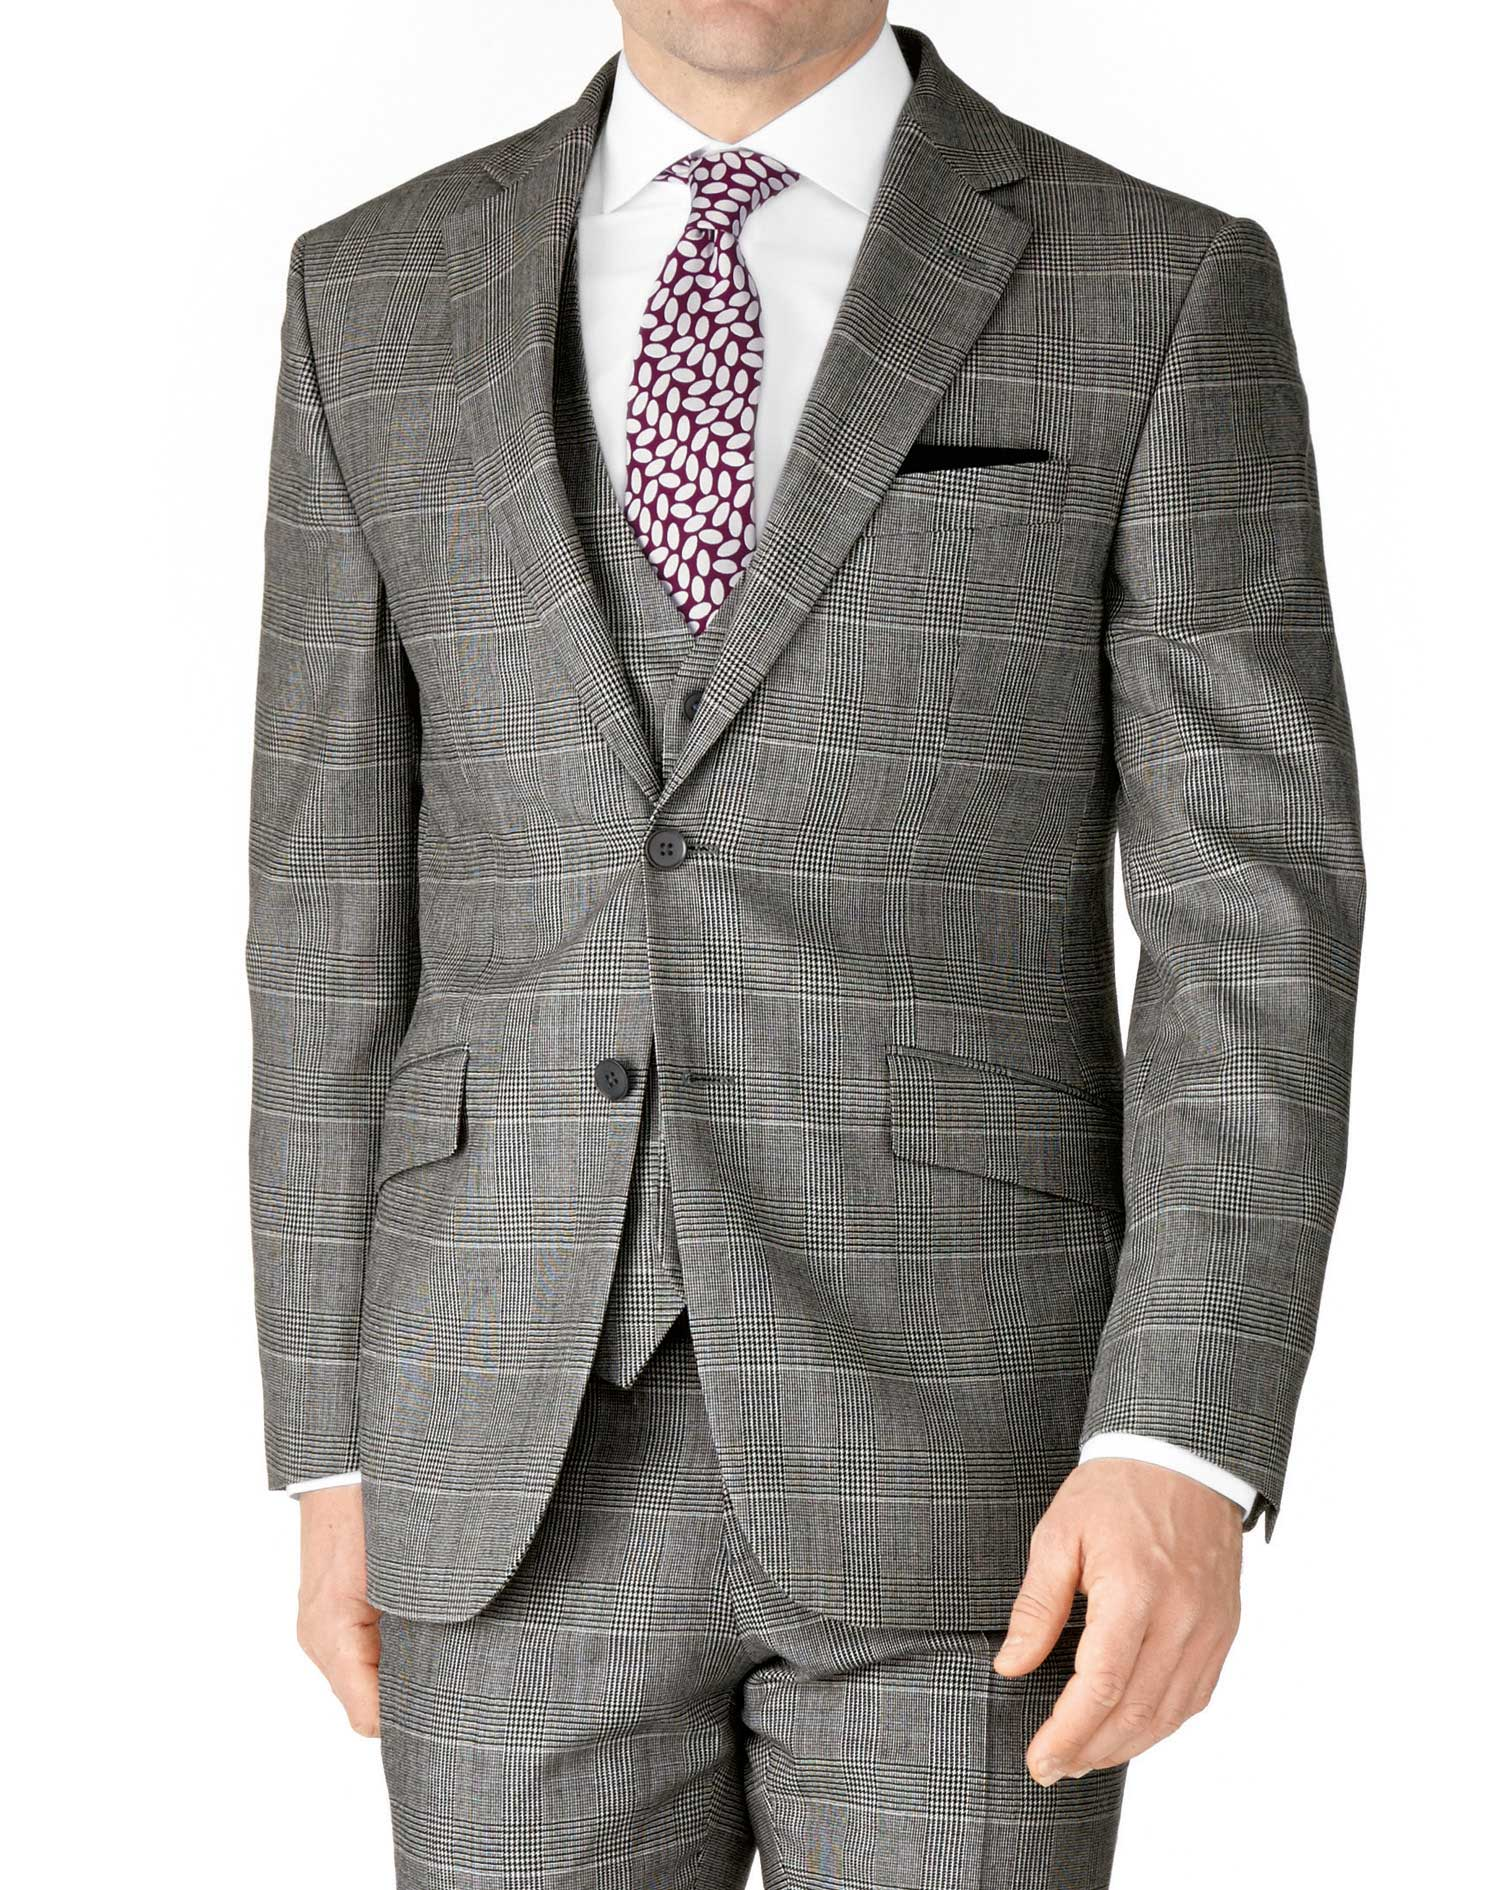 Grey Check Slim Fit Twill Business Suit Wool Jacket Size 42 Short by Charles Tyrwhitt